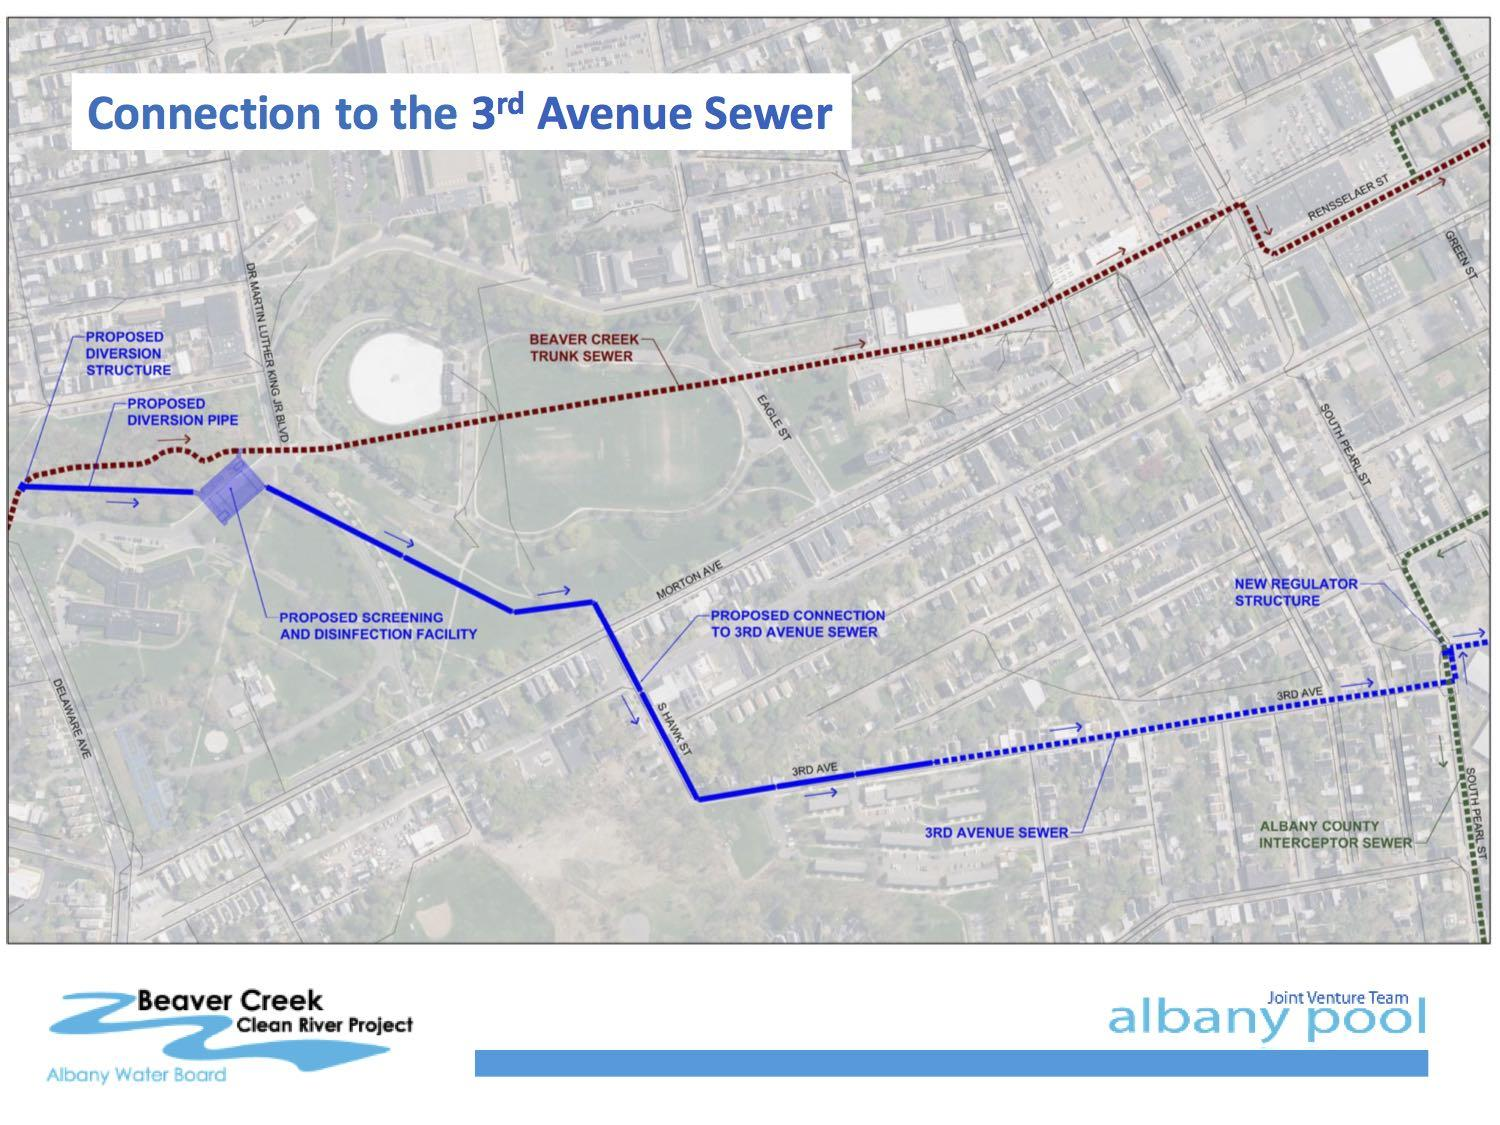 AWB_Beaver_Creek_Clean_River_Project_2018-11-27_sewer_lines.jpg